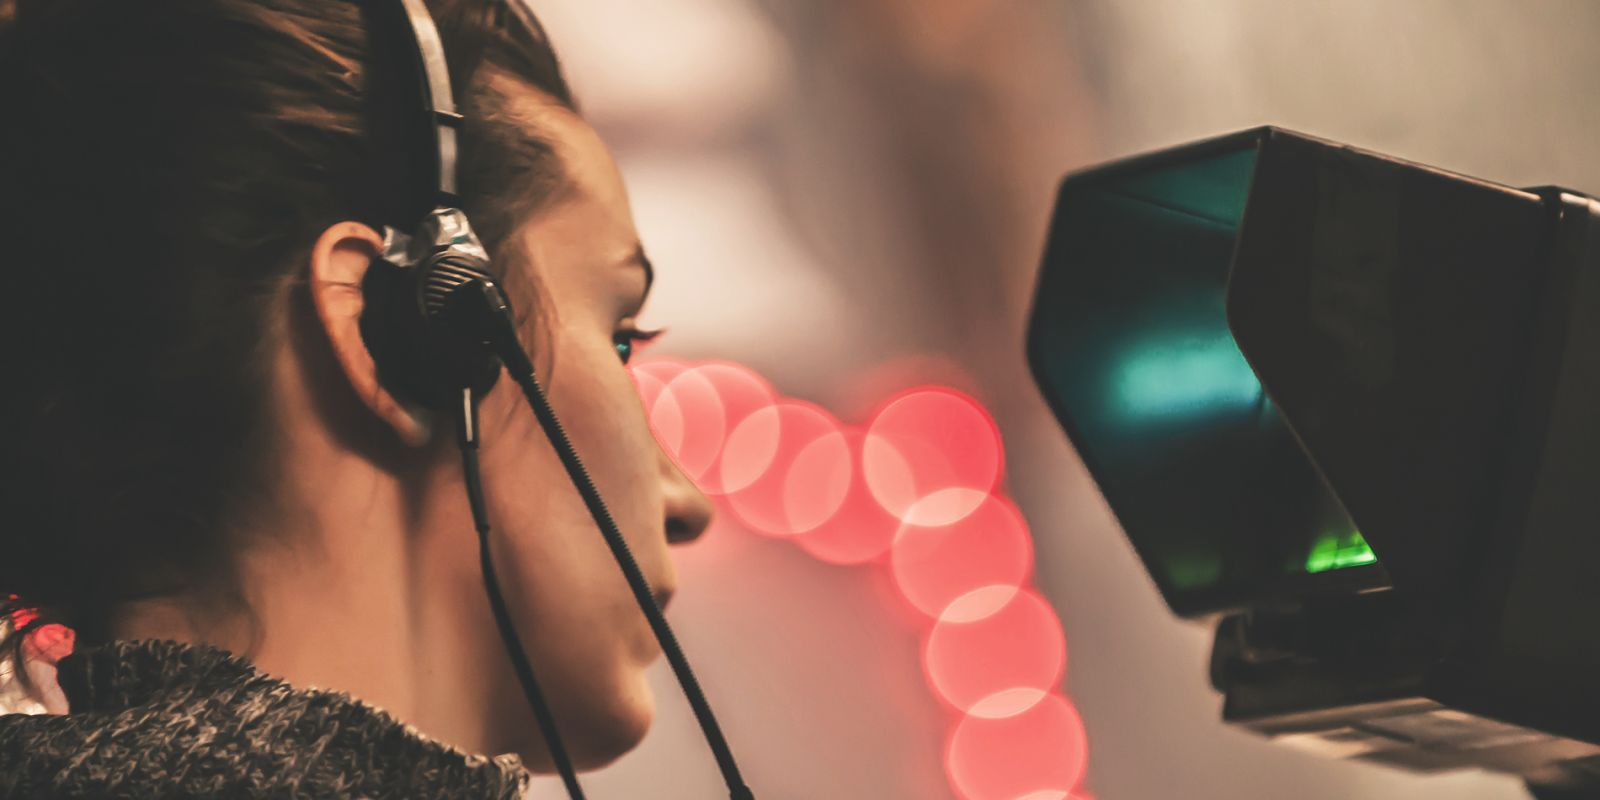 A close up picture of a woman with a headset on looking at the screen of a video camera with blurred lights in the background on the recruitment video production page.